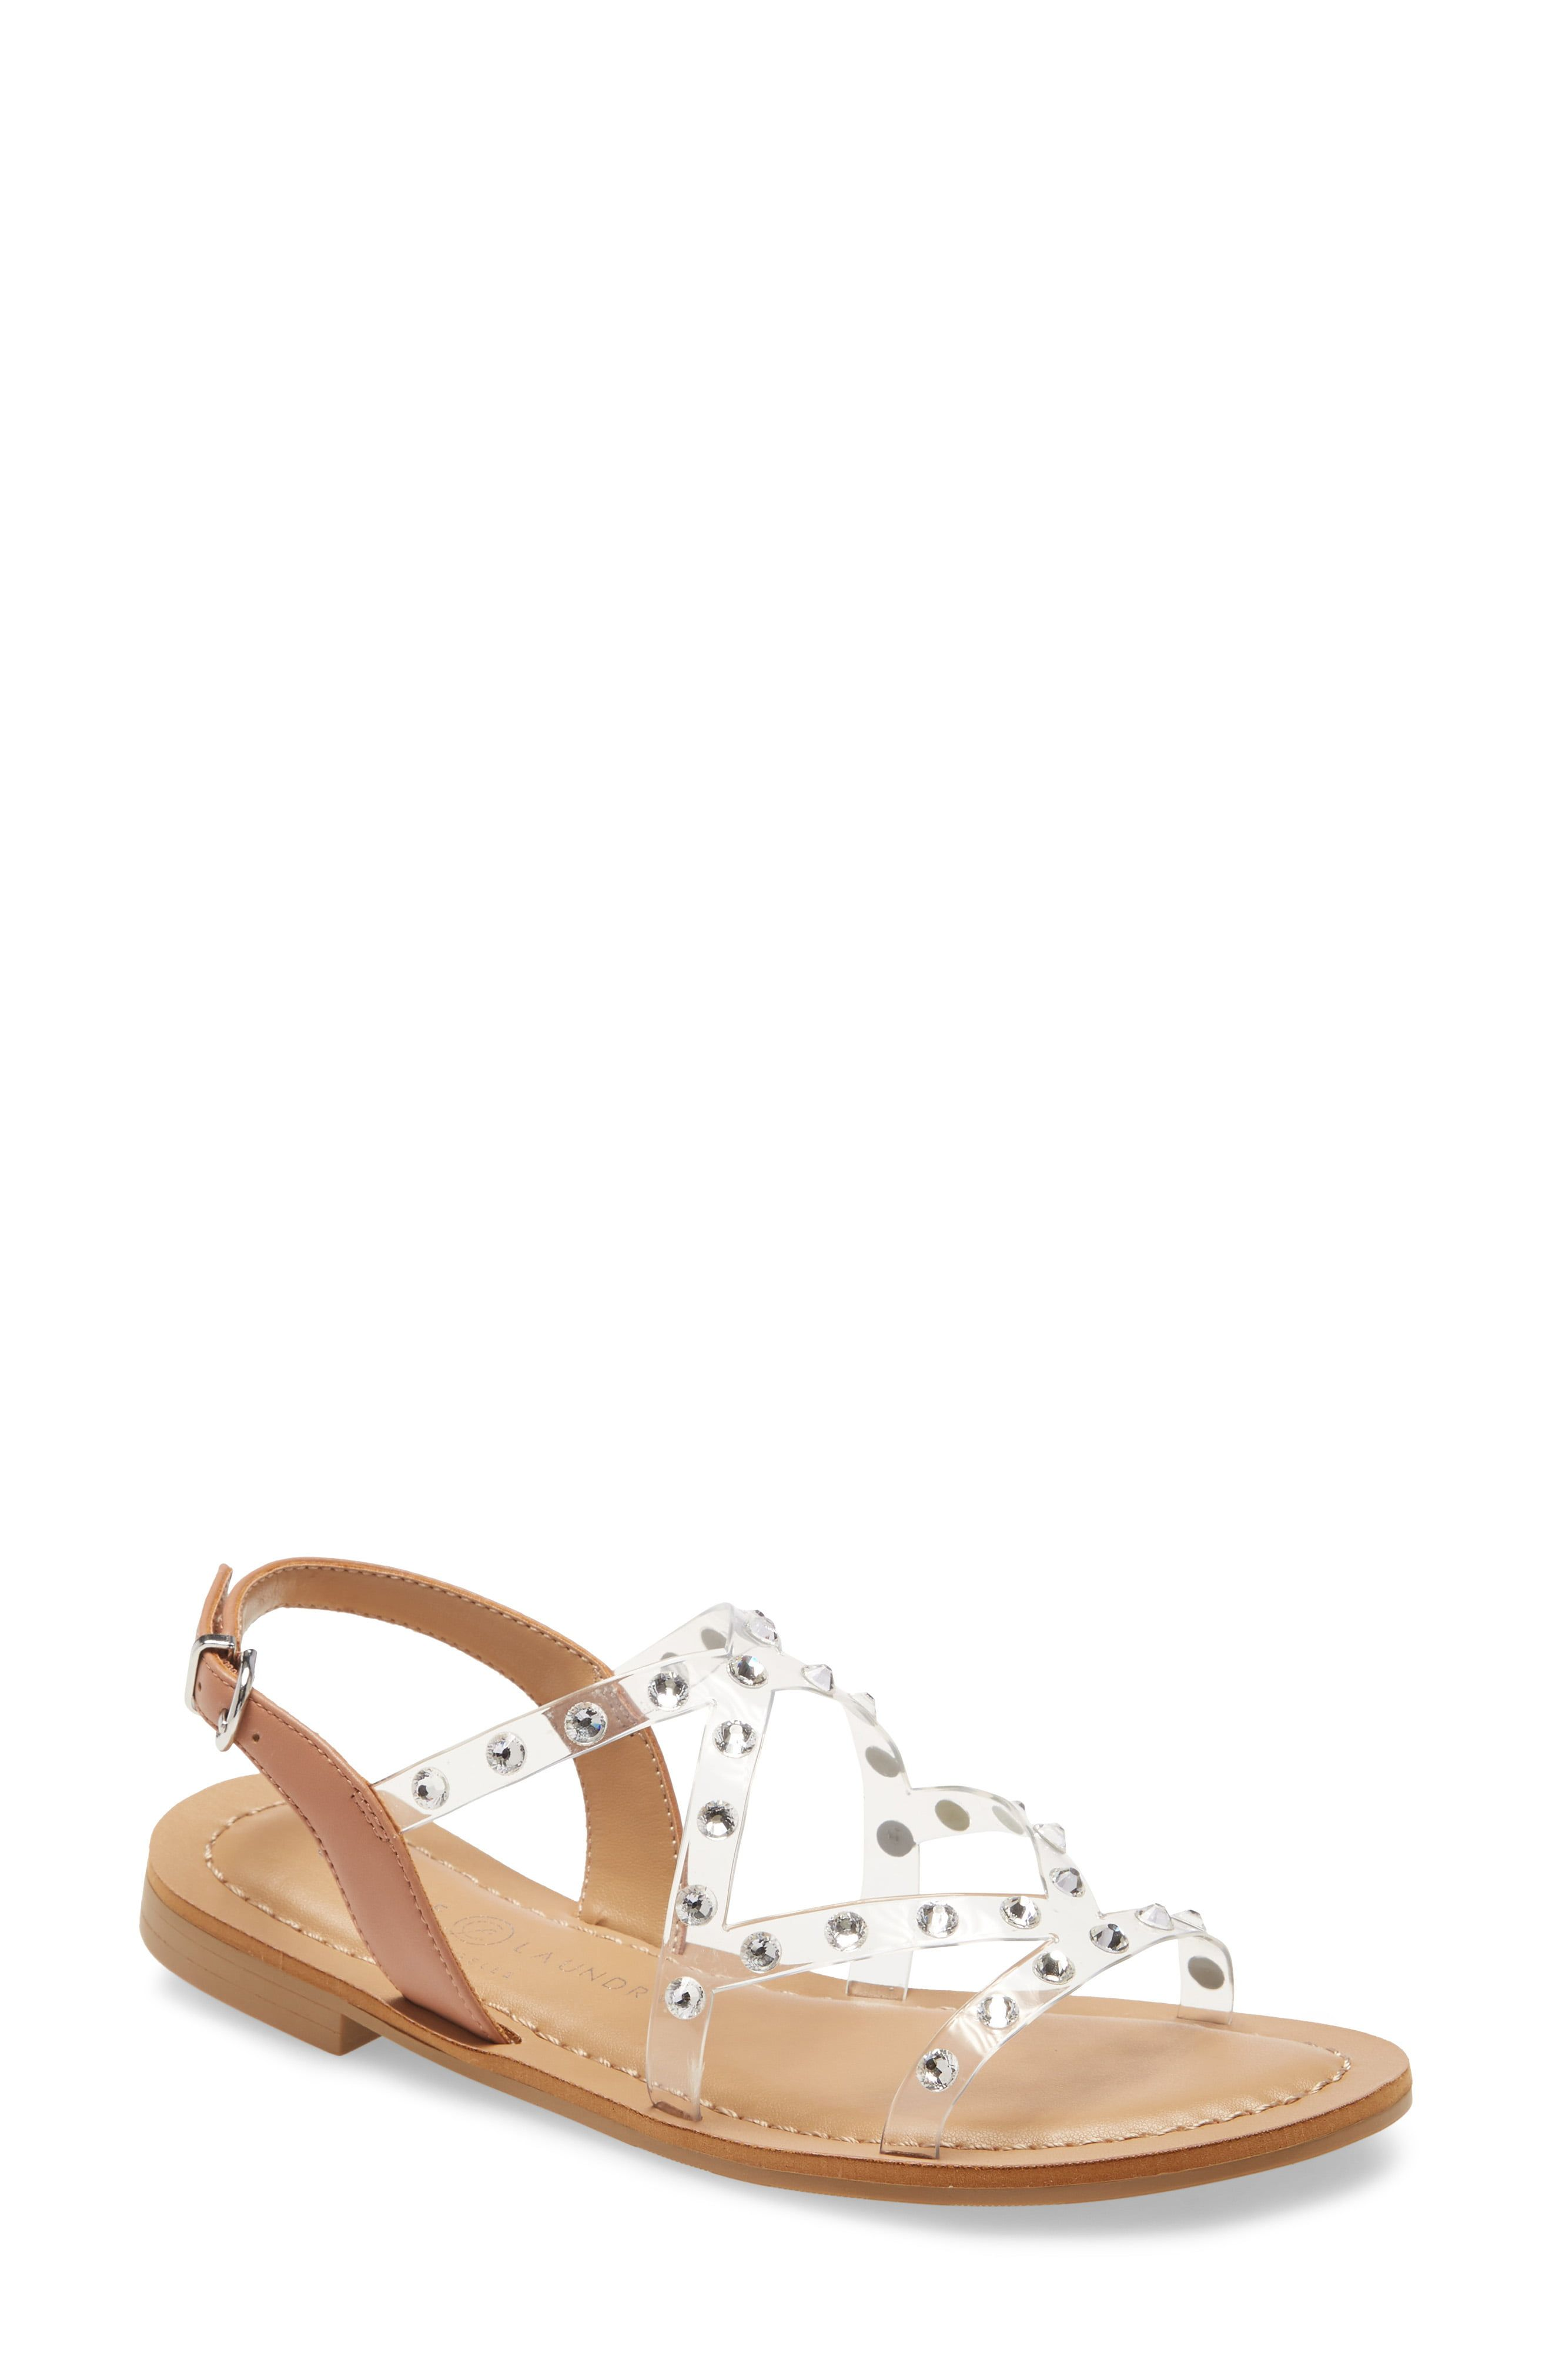 Chinese Laundry Candi Sandal Women In 2020 Sandals Chinese